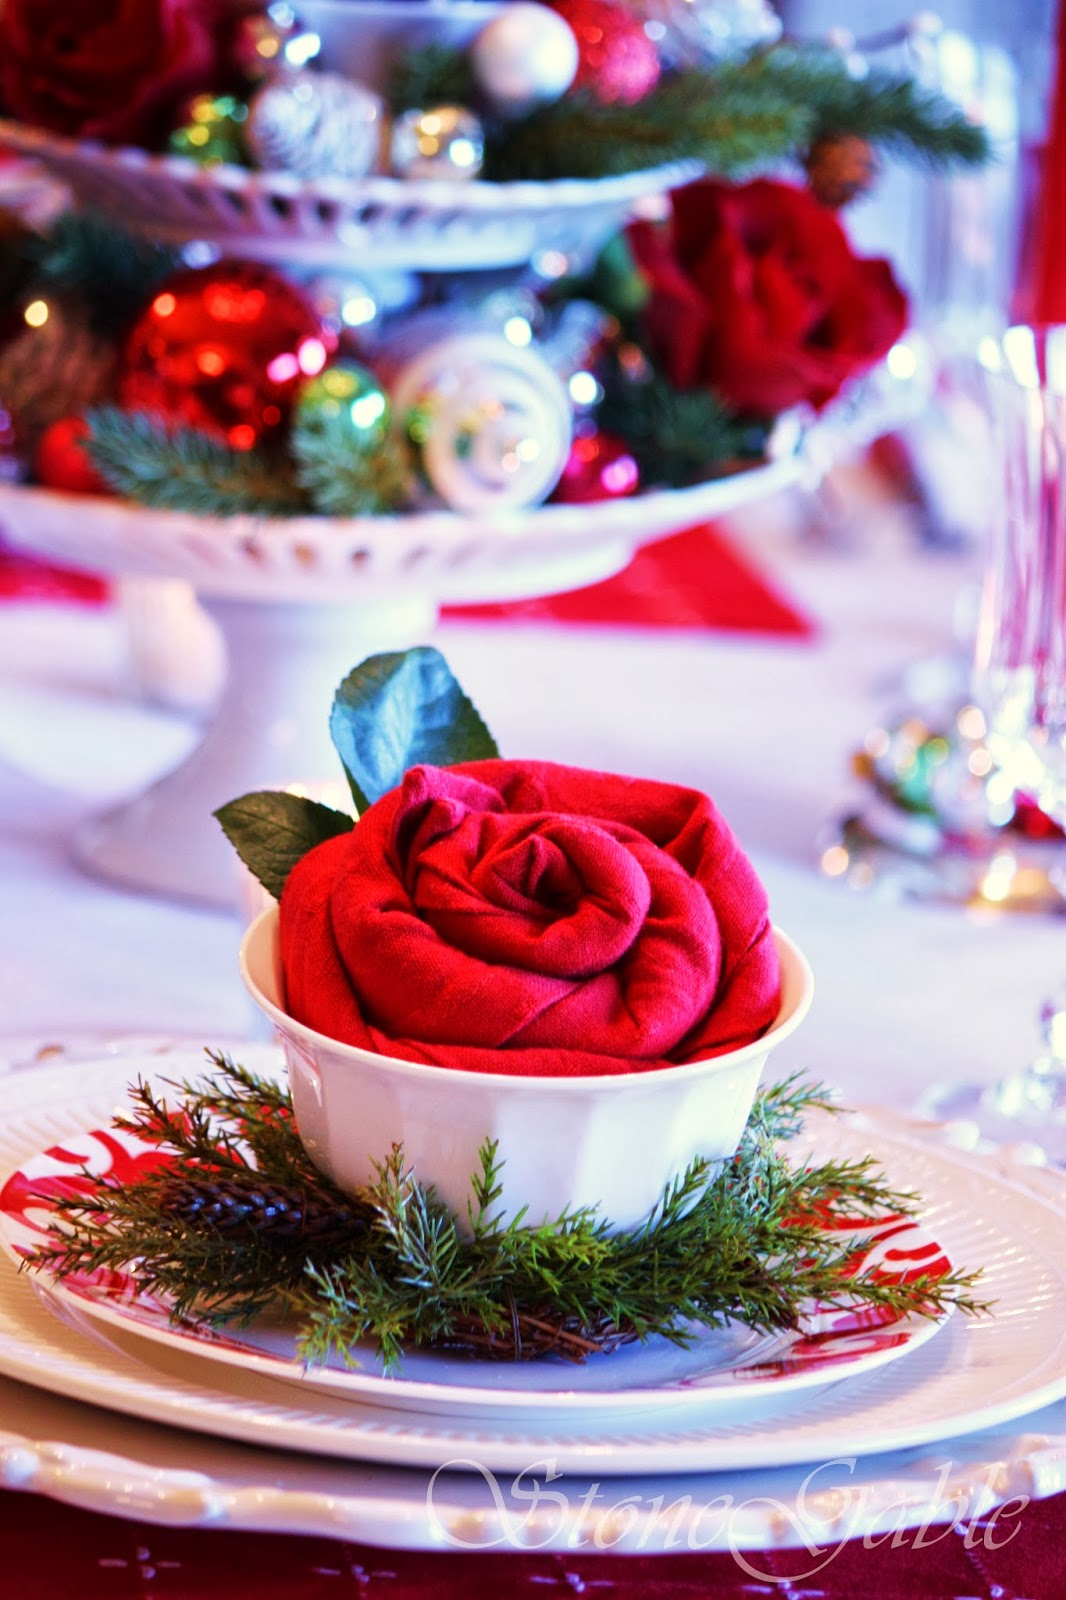 Christmas Dinner Party Ideas.The Great Christmas Dinner Party Stonegable